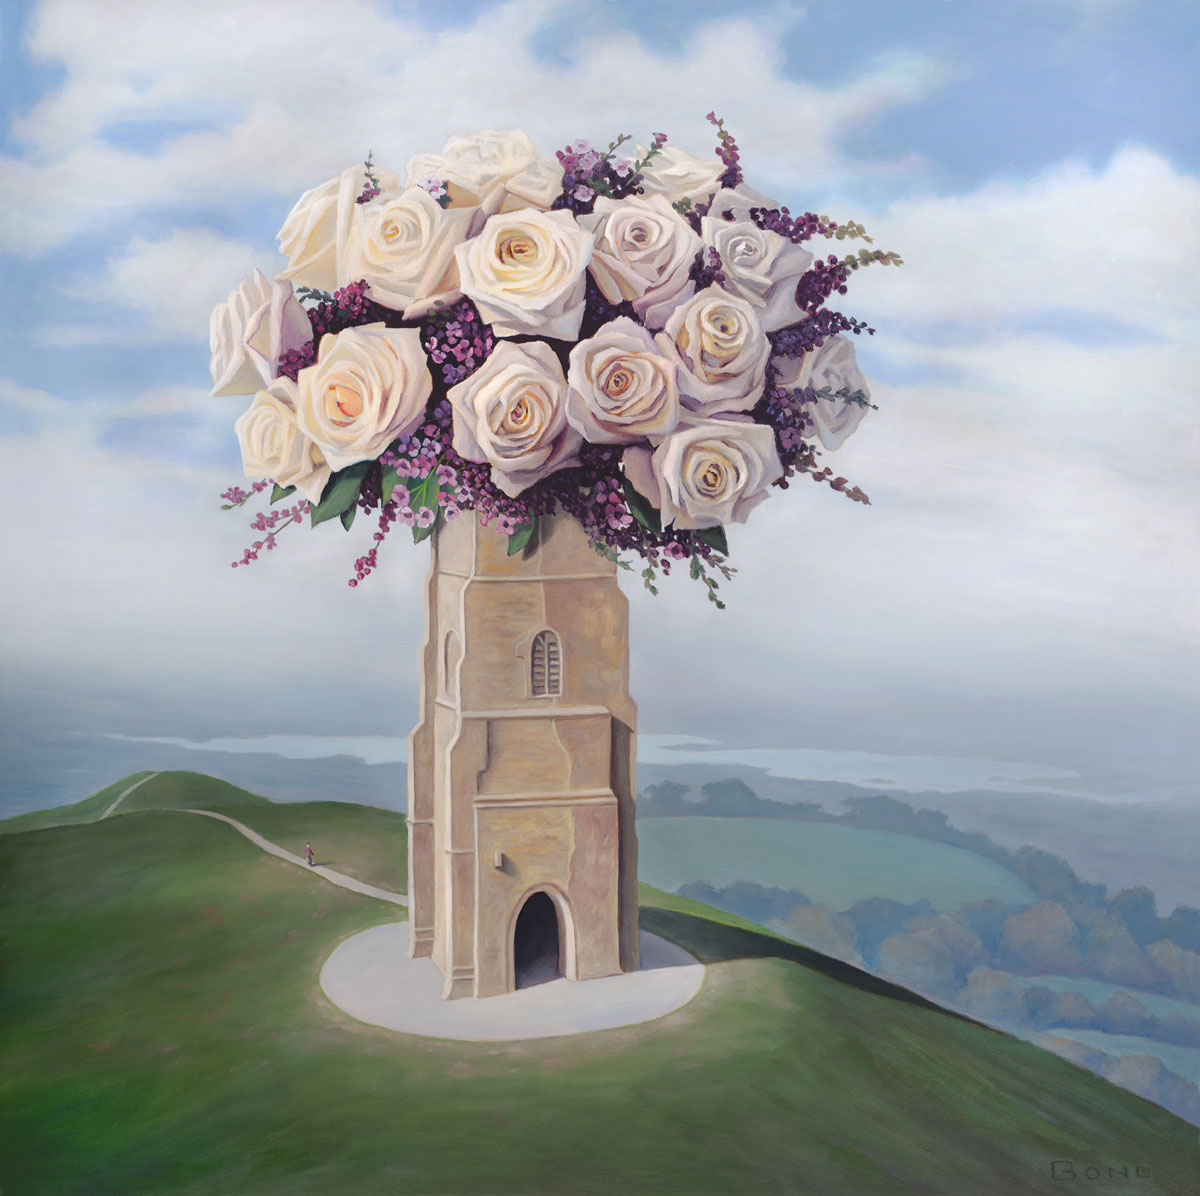 A Homecoming, art with roses, painting of the Glastonbury Tor, art with flowers, art with castle, painting of Tower of St Michael's in Glastonbury, England, painting of abby church ruins, art with man walking on path, portrait of landscape with clouds, male figure with hill and sky, painting meaning reincarnation, art meaning grace love and peace, art conveying travel, painting with idealism, soulful uplifting inspirational art, soul stirring illusion art, romantic art,  surrealism, surreal art, dreamlike imagery, fanciful art, fantasy art, dreamscape visual, metaphysical art, spiritual painting, metaphysical painting, spiritual art, whimsical art, whimsy art, dream art, fantastic realism art, limited edition giclee, signed art print, fine art reproduction, original magic realism oil painting by Paul Bond